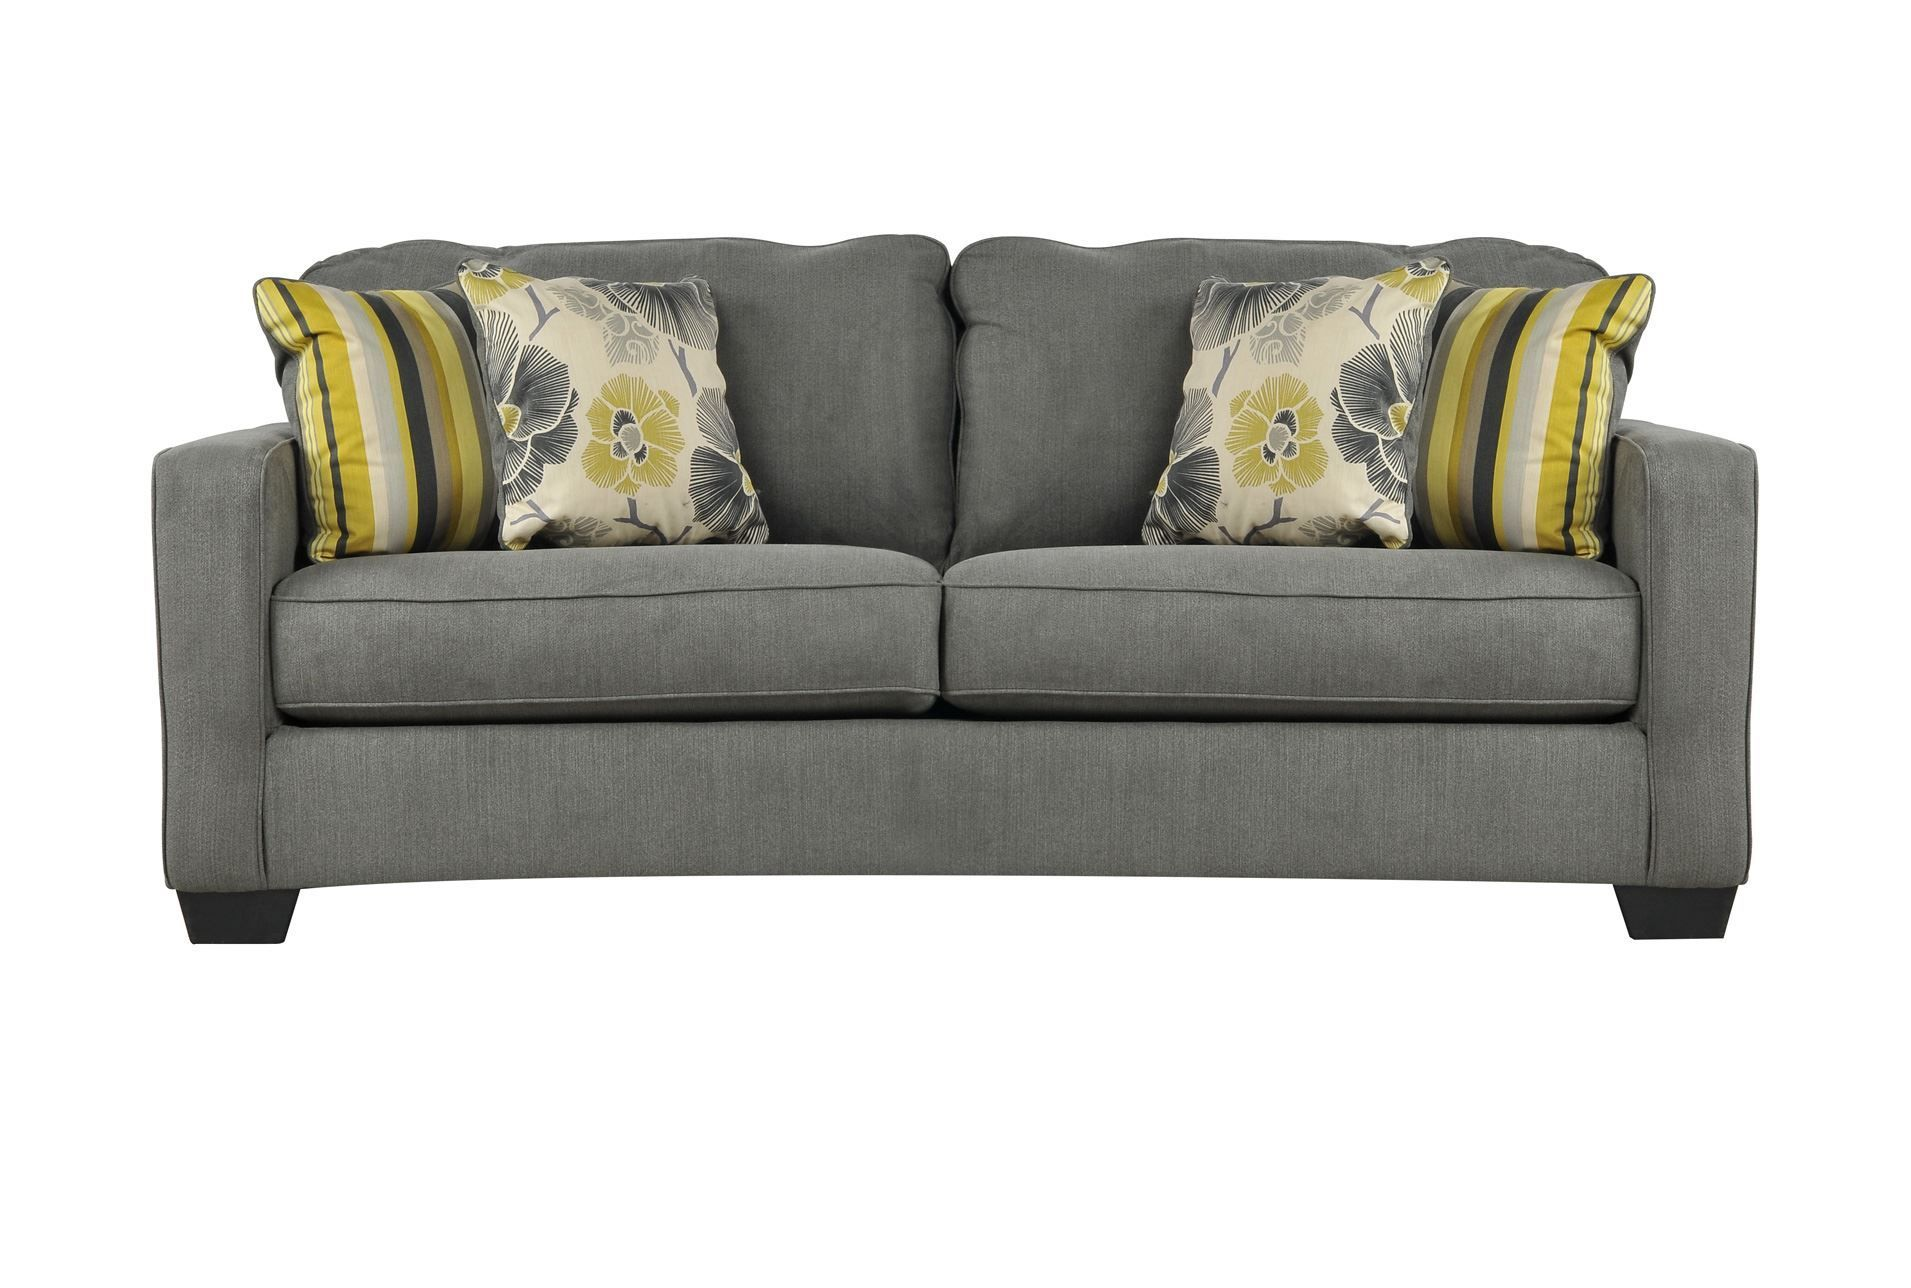 Safia Slate Sofa   Available At Living Spaces Www.livingspaces.com I Think  Itu0027s Around $300? (not Positive. . .) But I Just Love The Grey With The  Yellow In ...